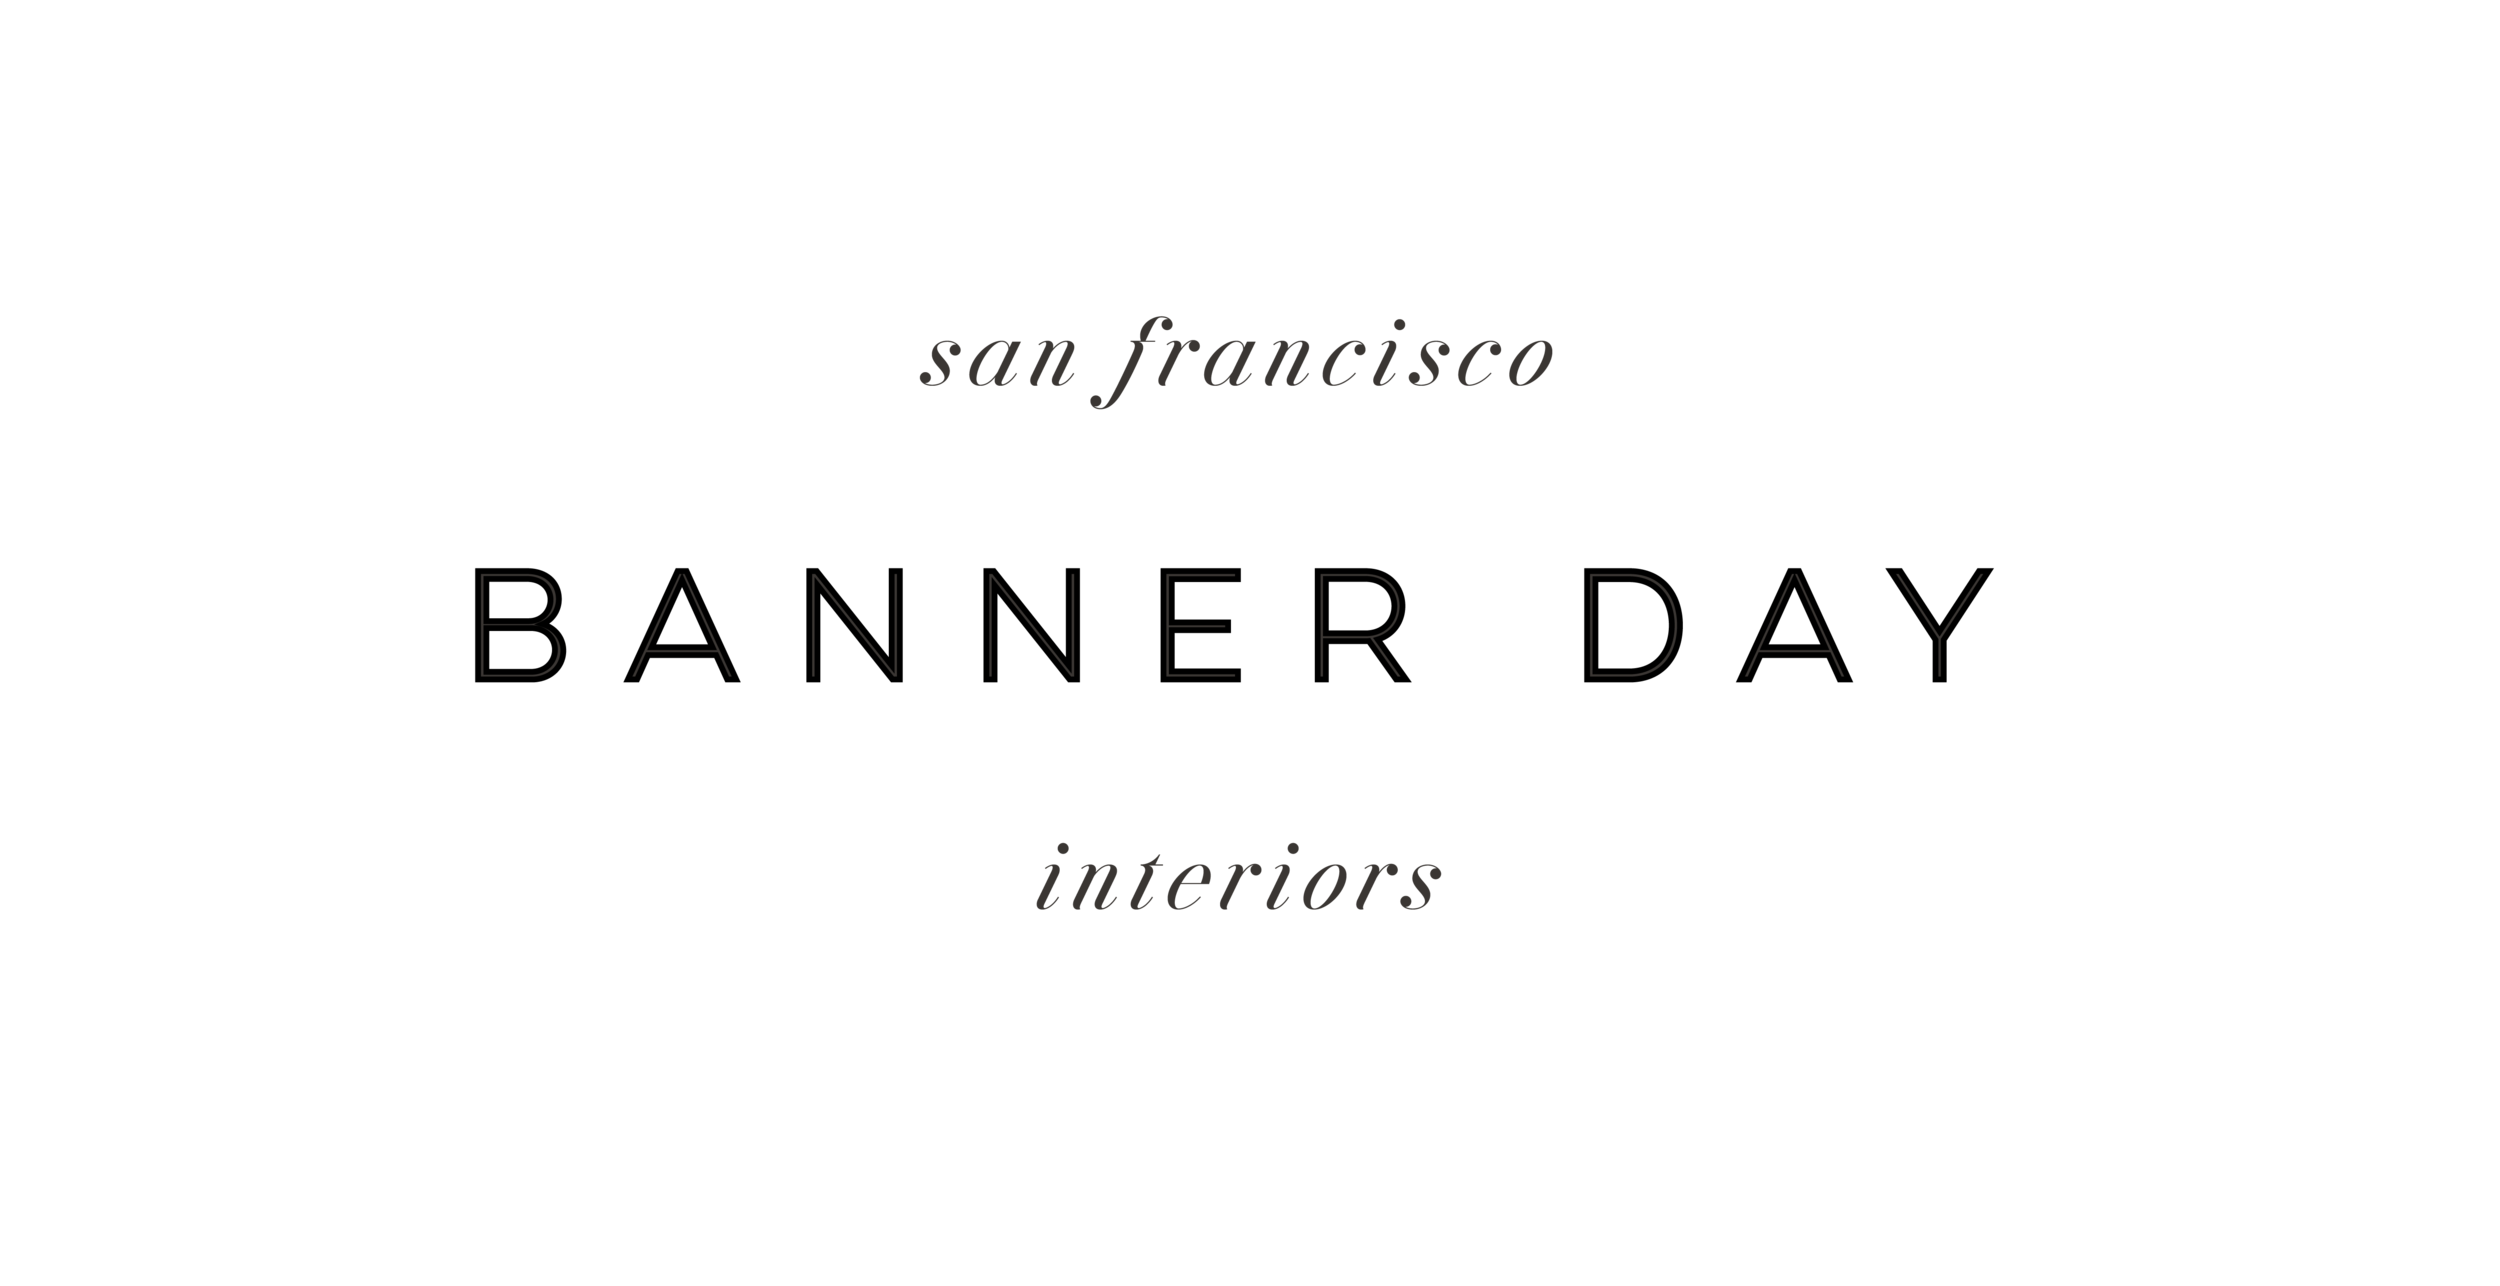 banner-day-san-francisco-interior-designer.png